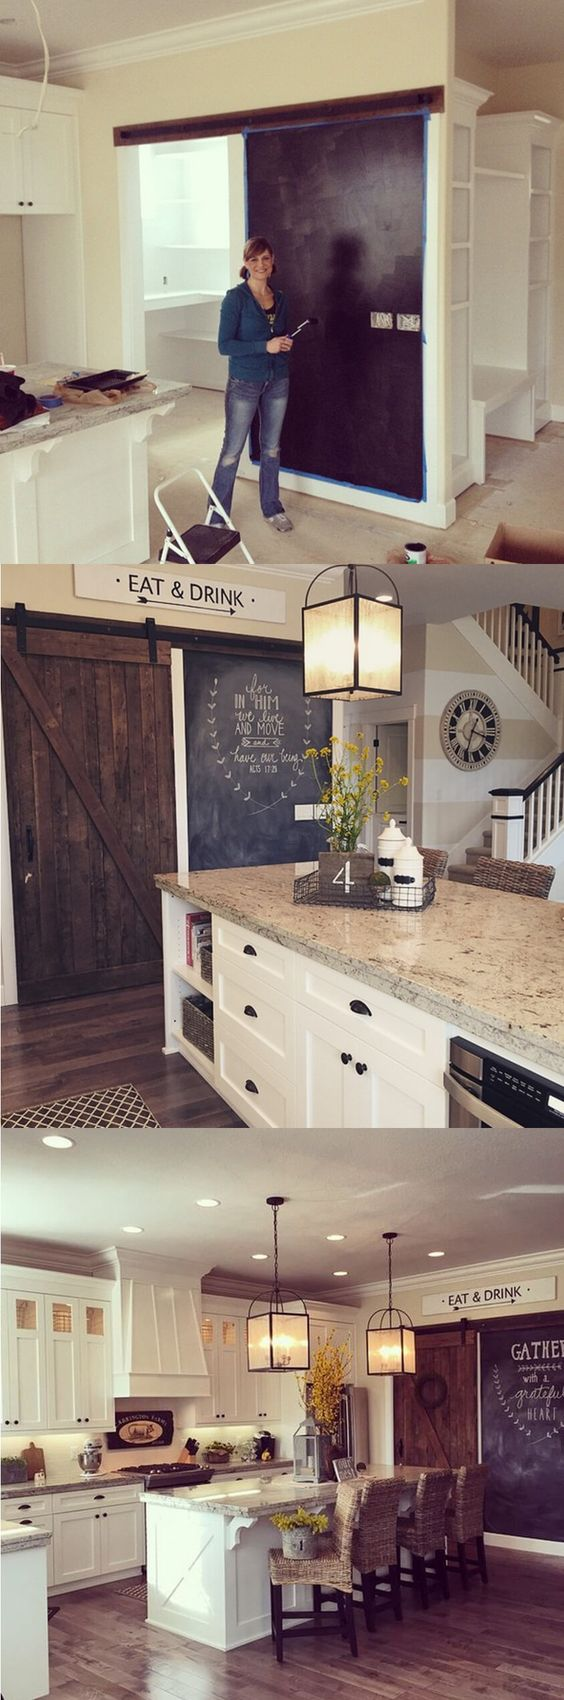 White Farmhouse kitchen inspiration pics